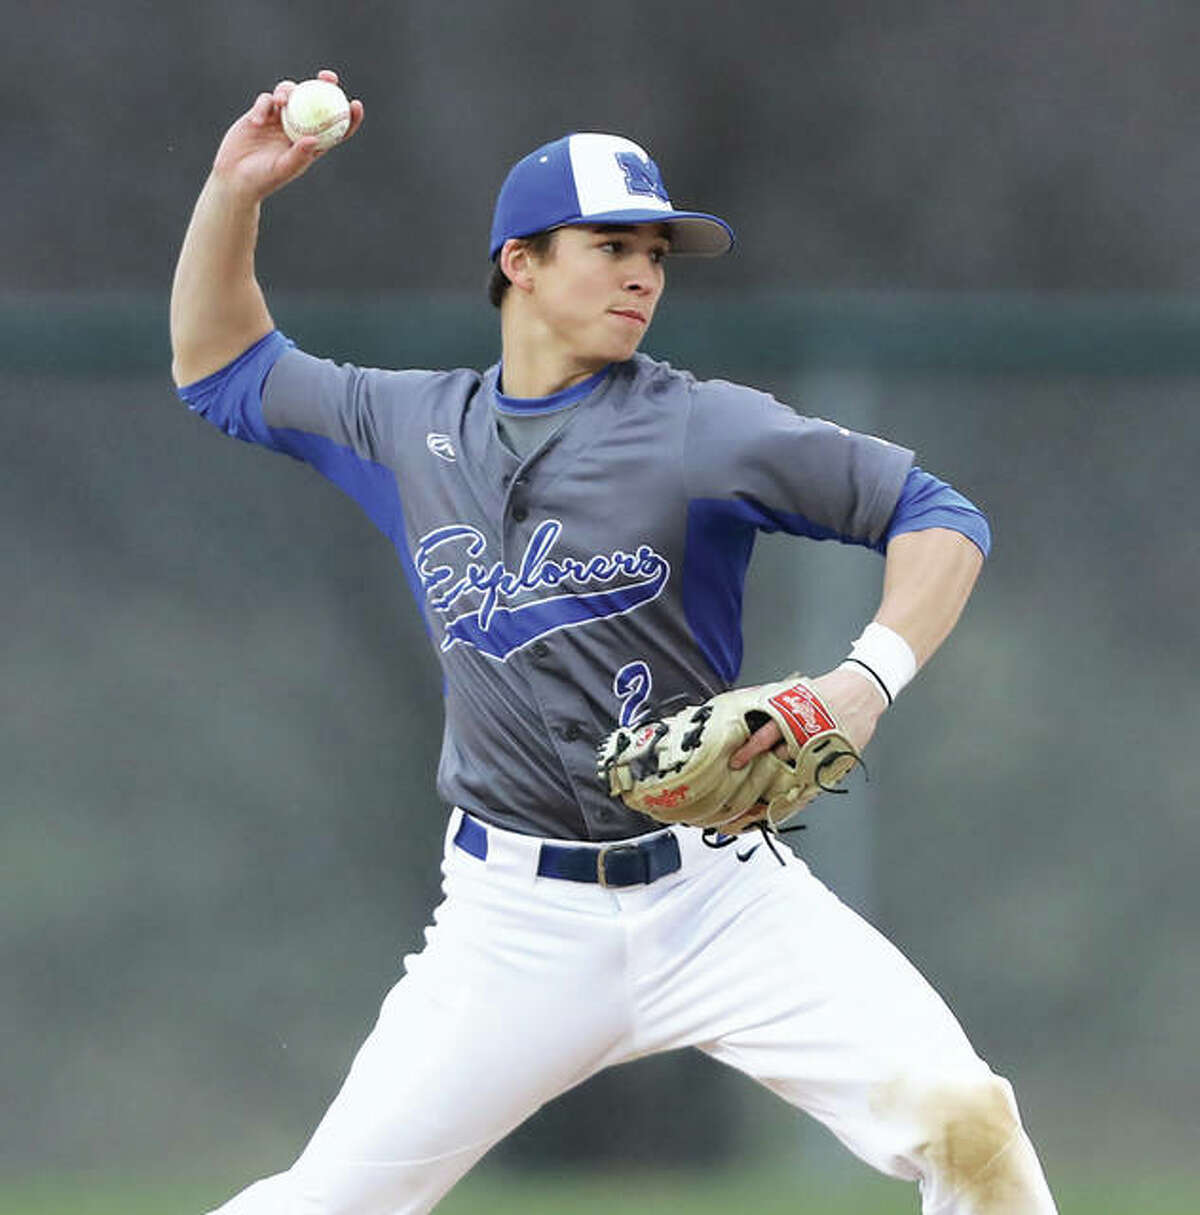 Marquette Catholic High grad Jayce Maag, who plays at Lindenwood University, had a two-run double for the Quincy Gems in their victory over the Alton River Dragons Wednesday night at Lloyd Hopkins Field. He is shown during his days playing for Marquette.